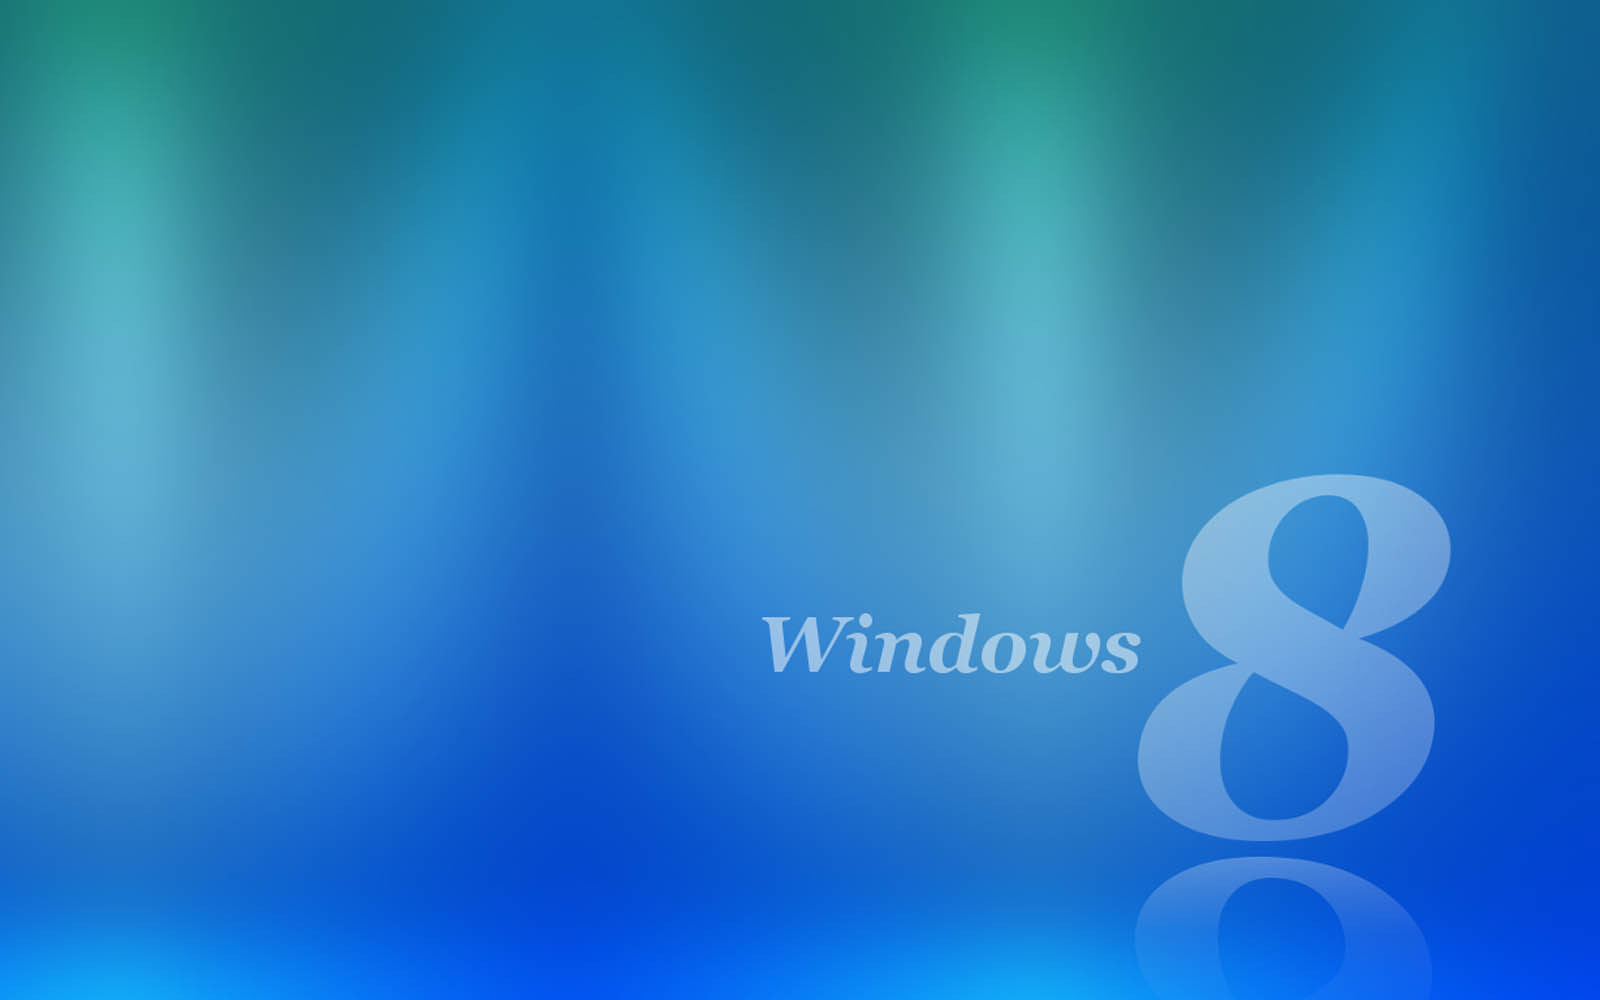 Window Background Of Wallpapers Windows 8 Backgrounds